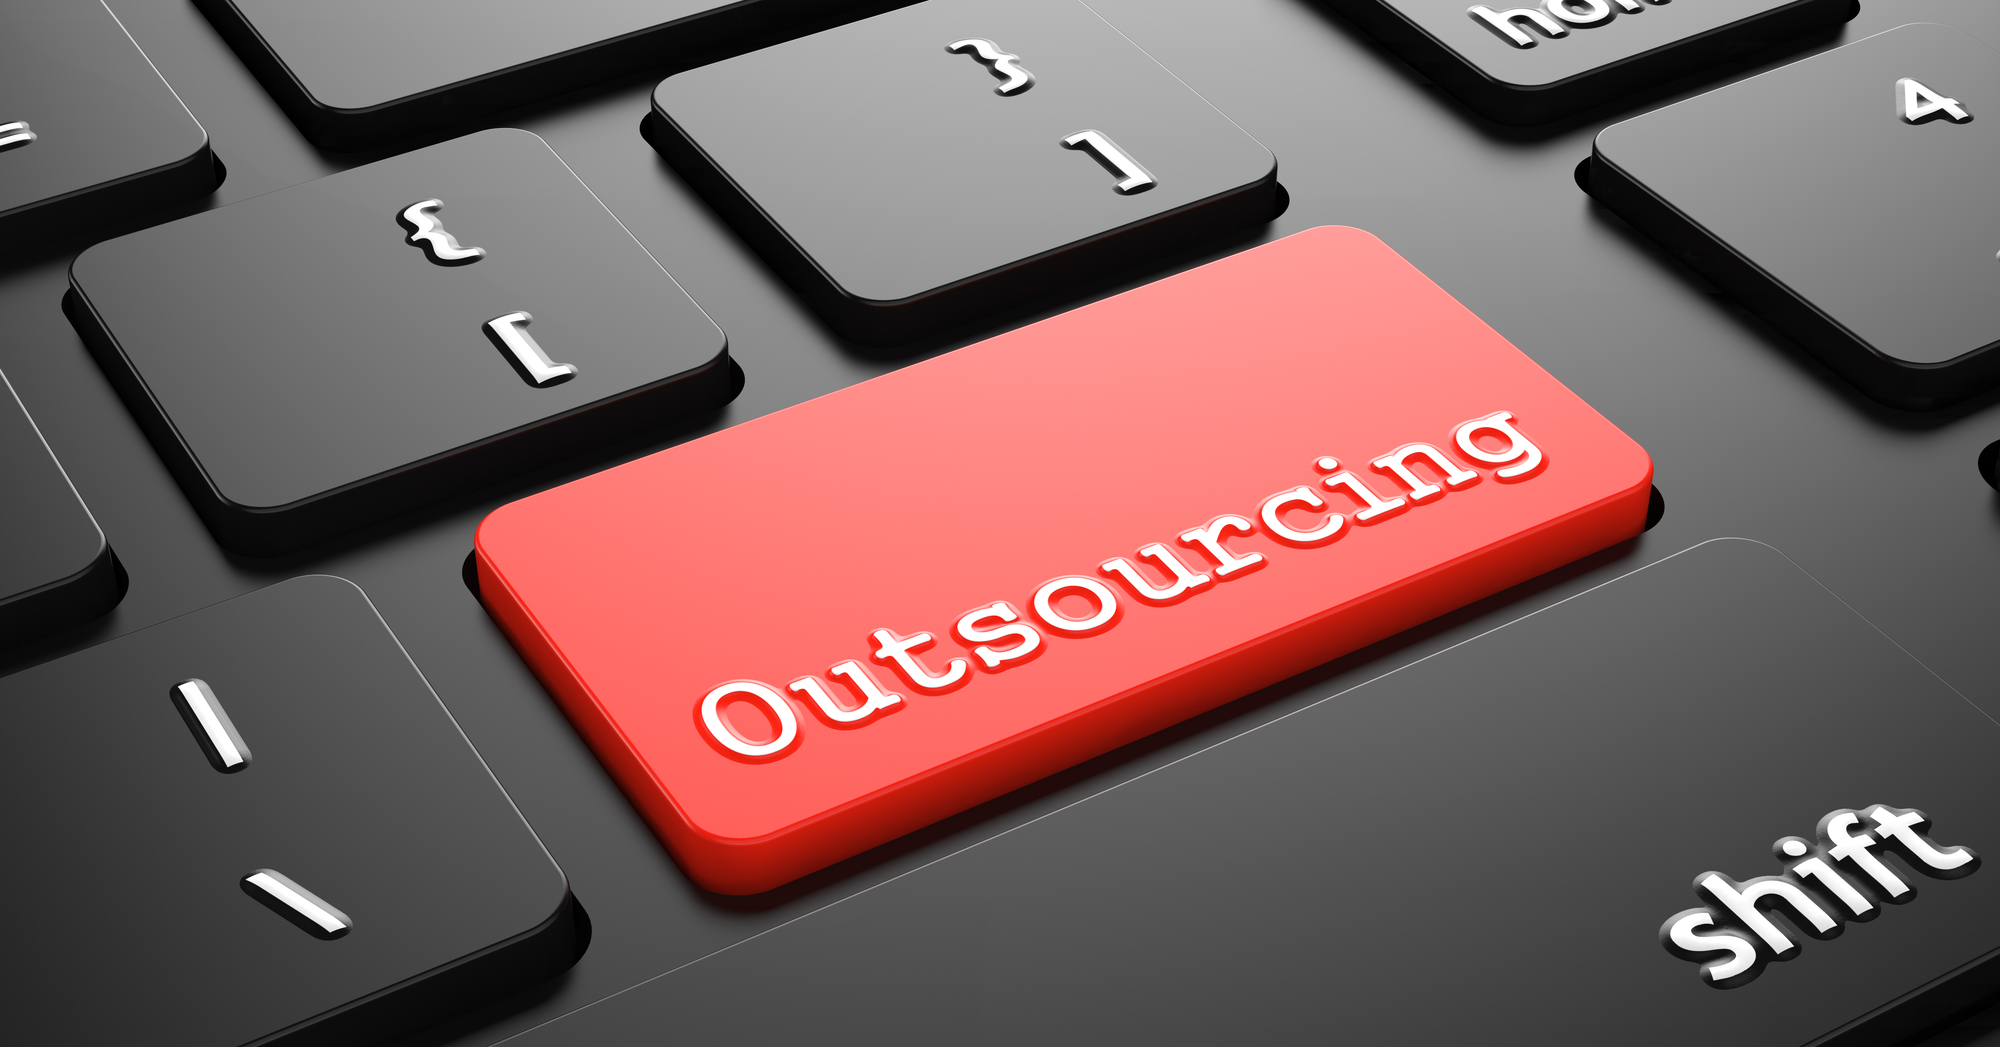 6 Ways To Make Outsourcing Work For Your Business